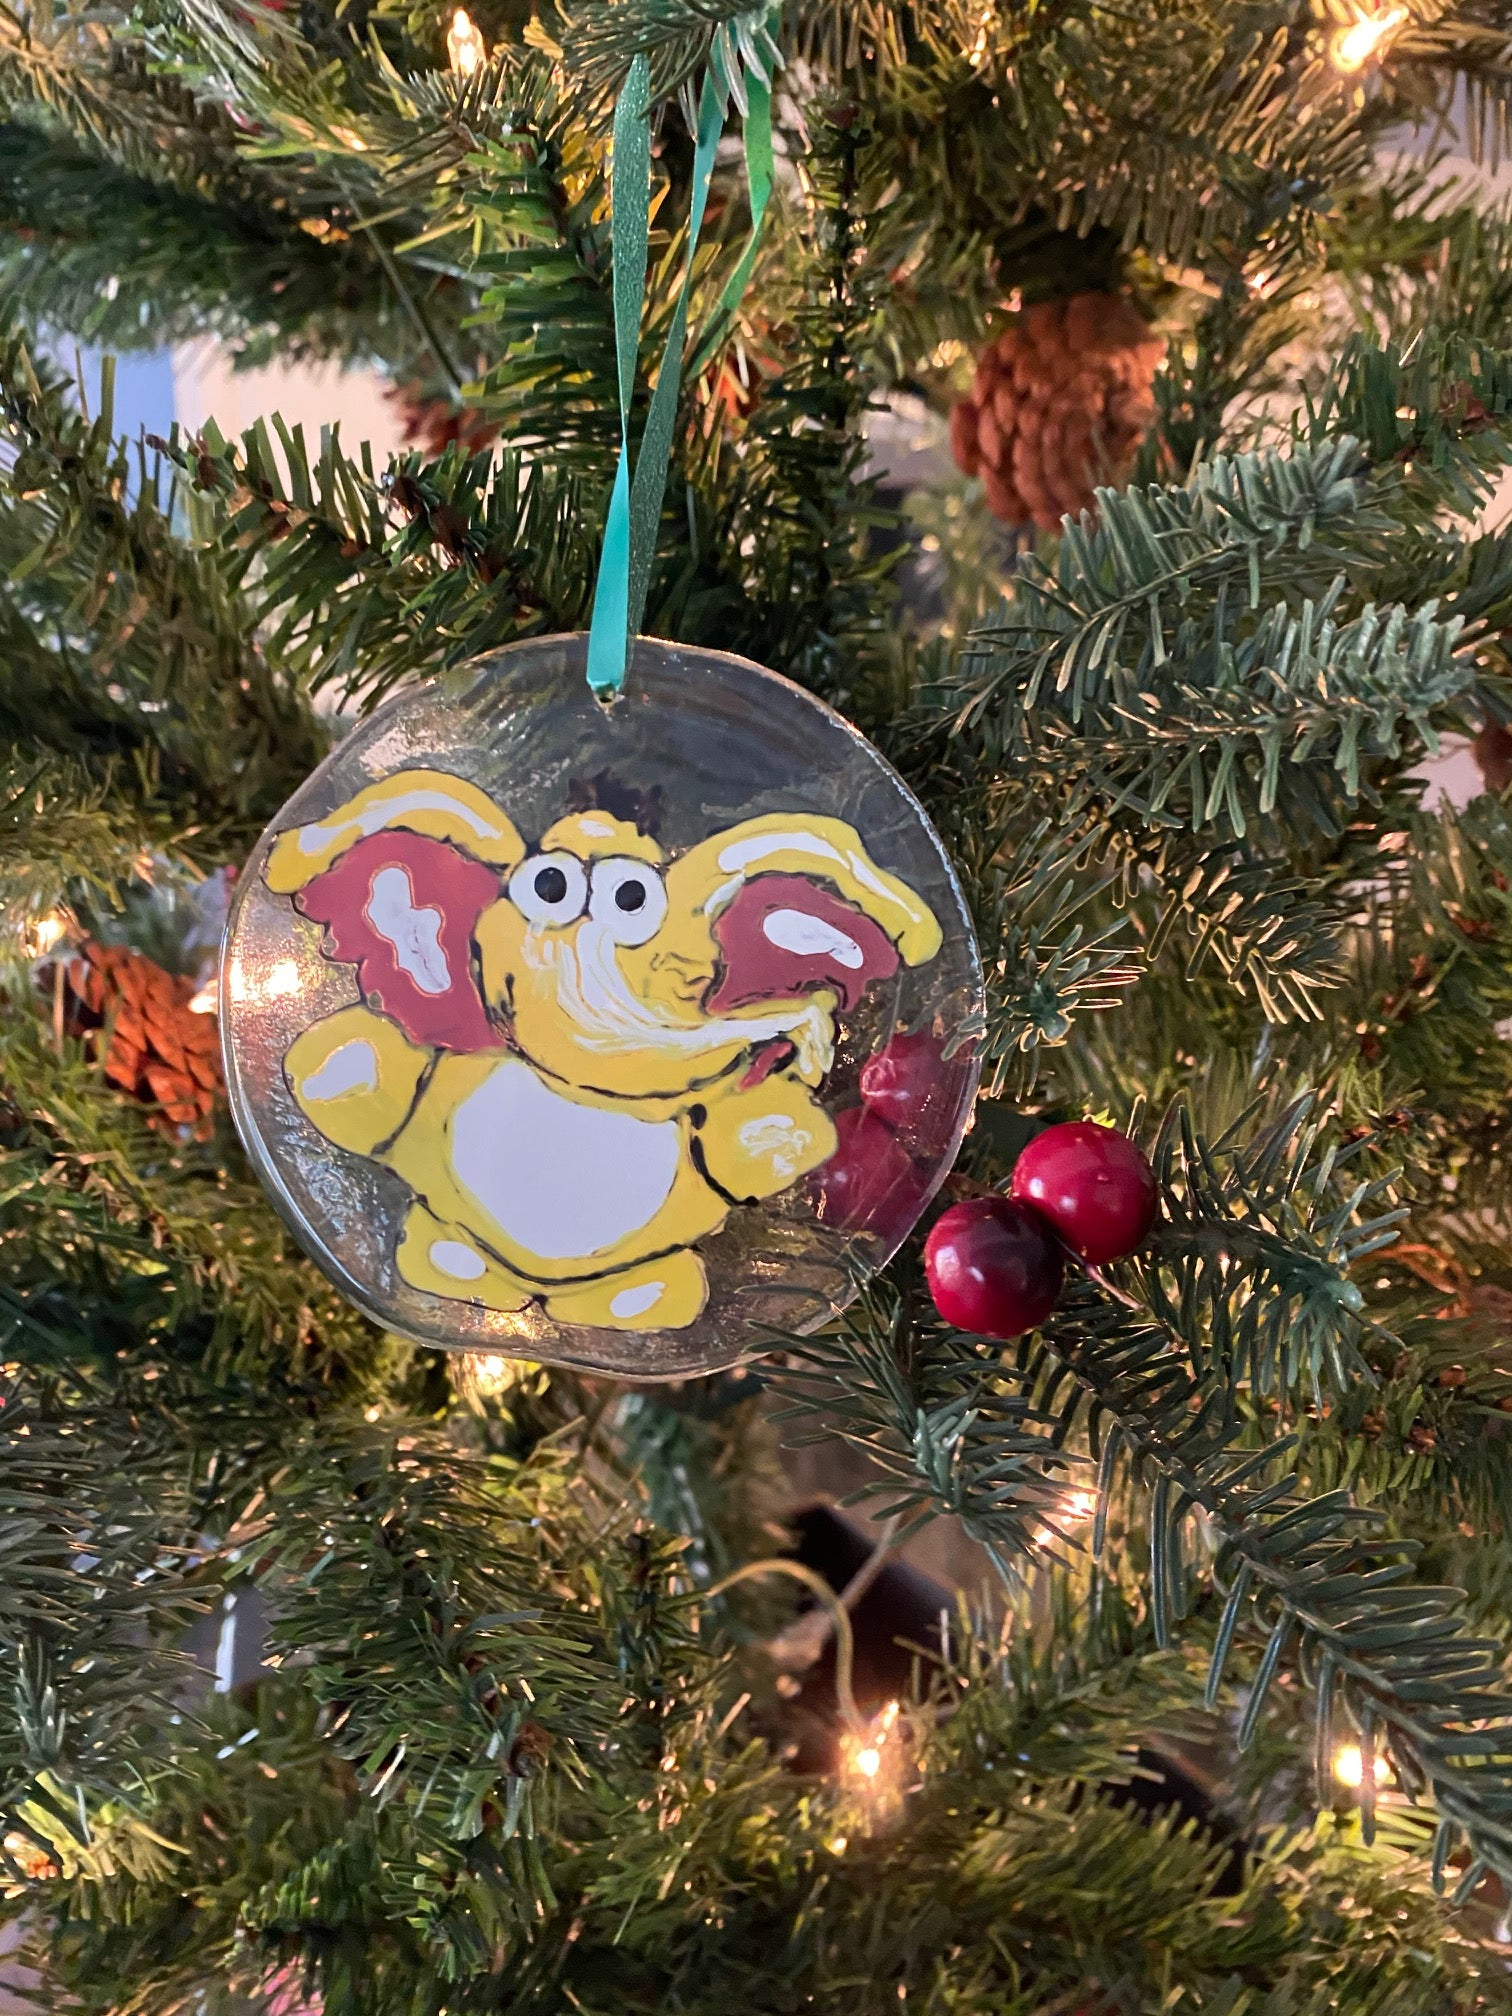 Ellie the Elephant - Hand Painted Fused Glass Ornament